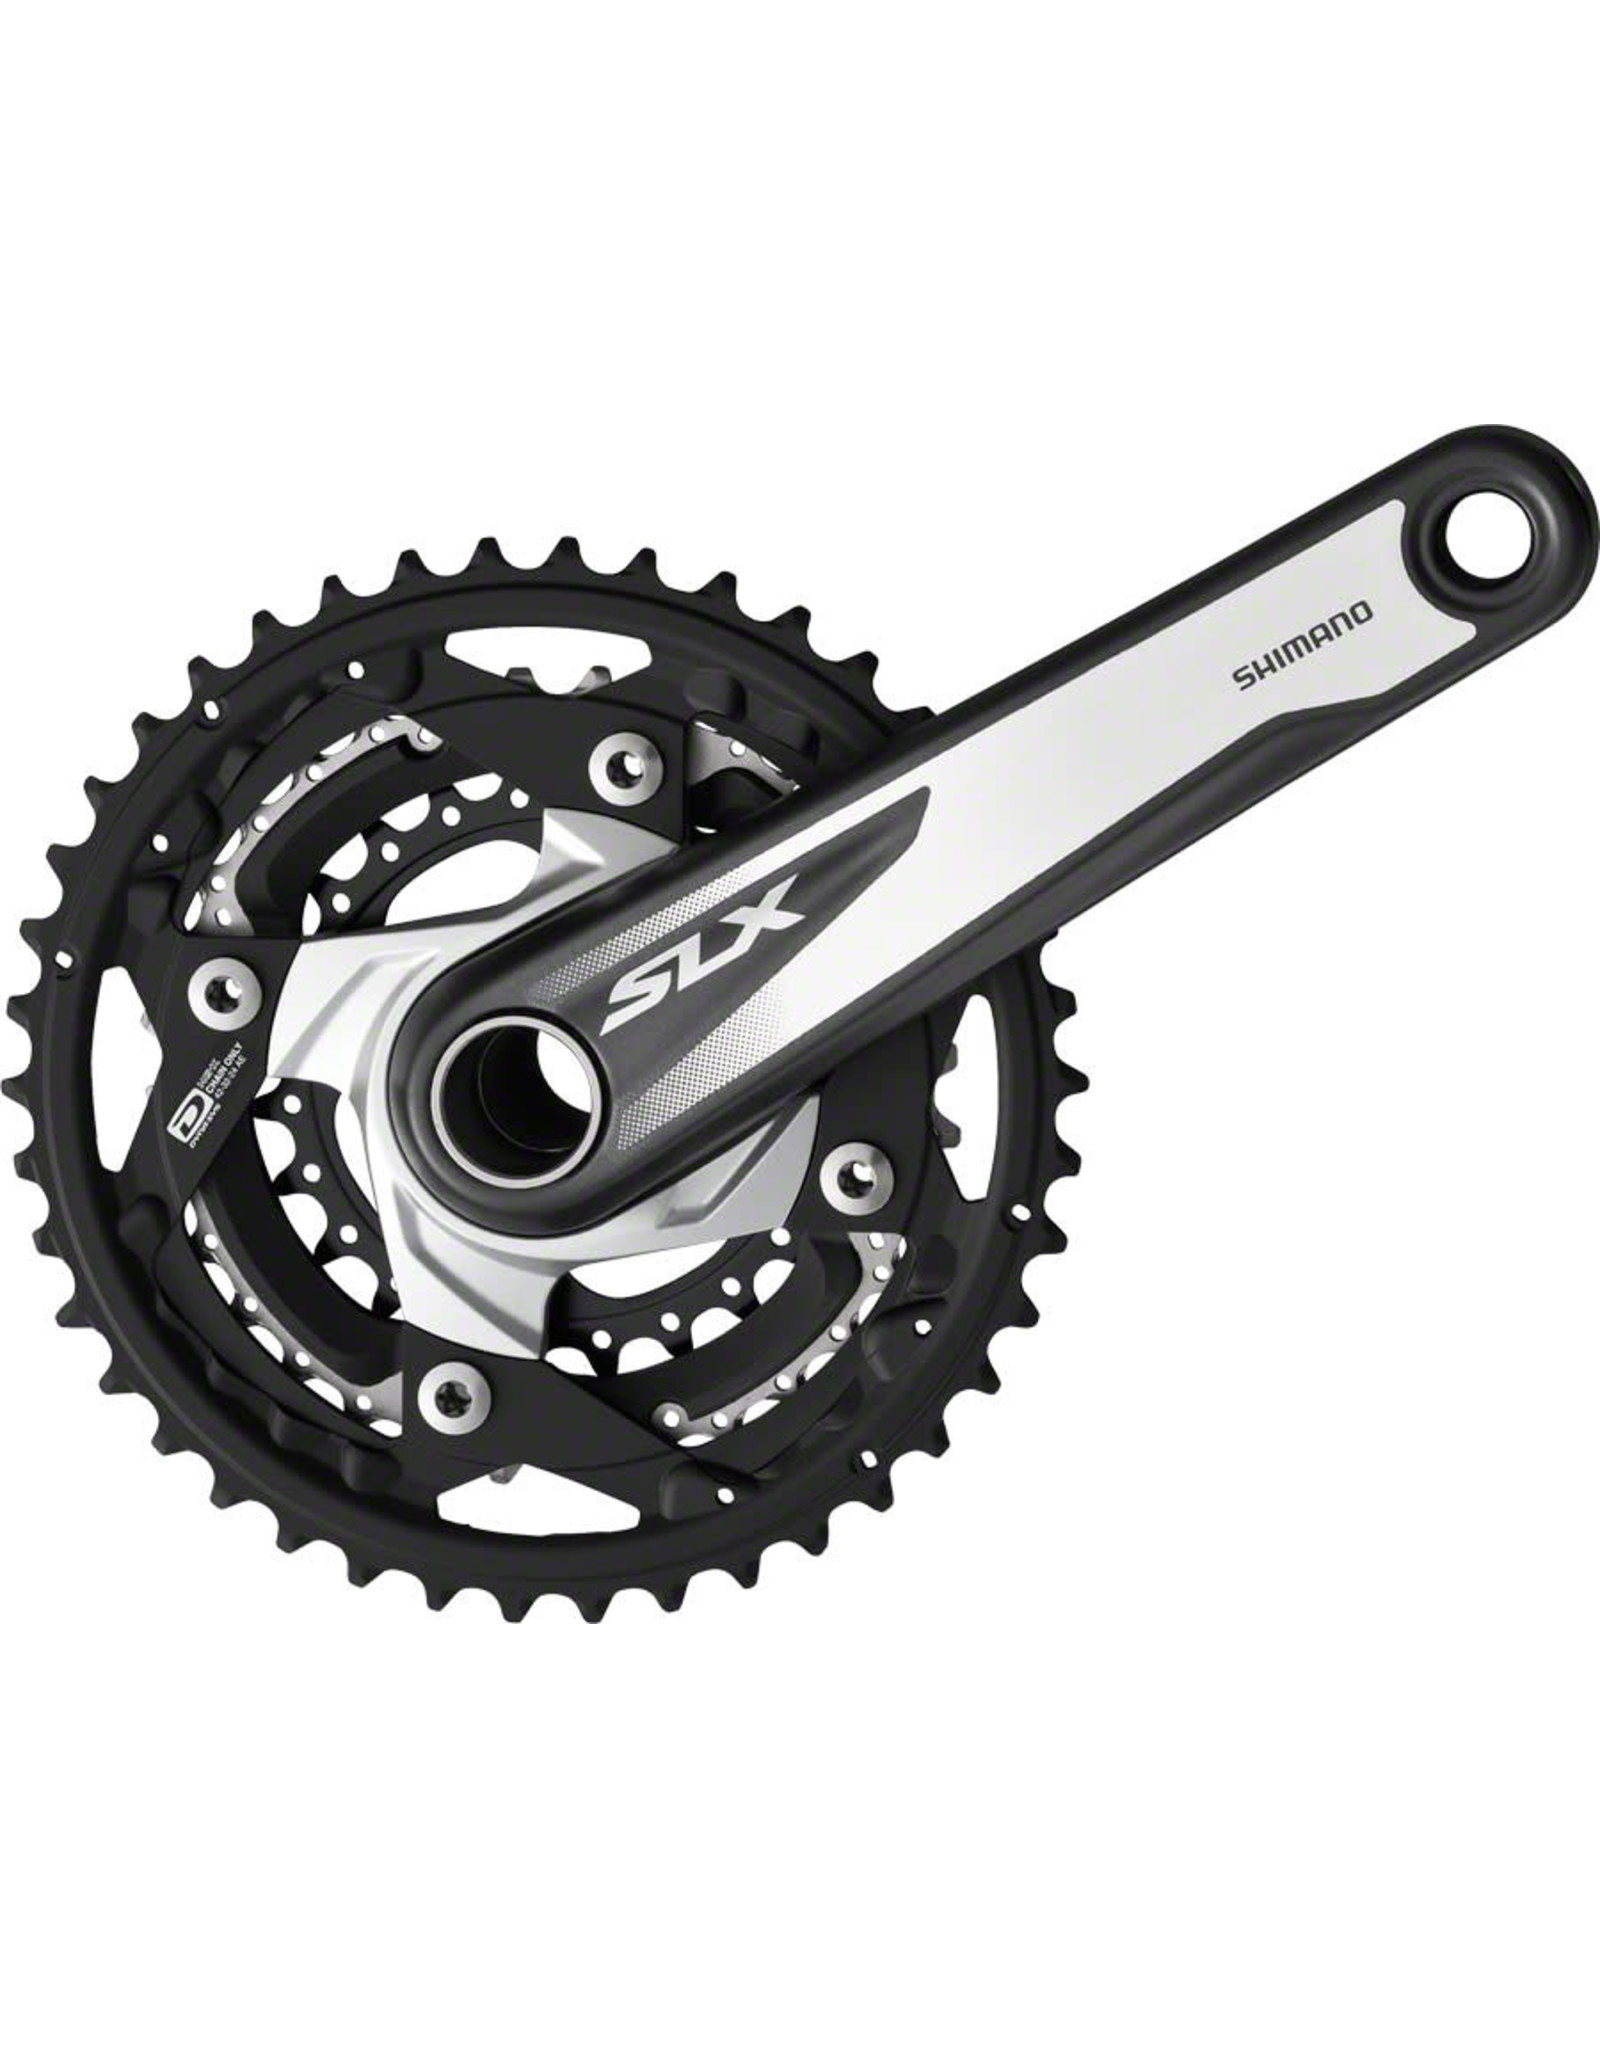 Shimano Shimano SLX M670 175mm Crankset Trail 42x32x24 with Bottom Bracket